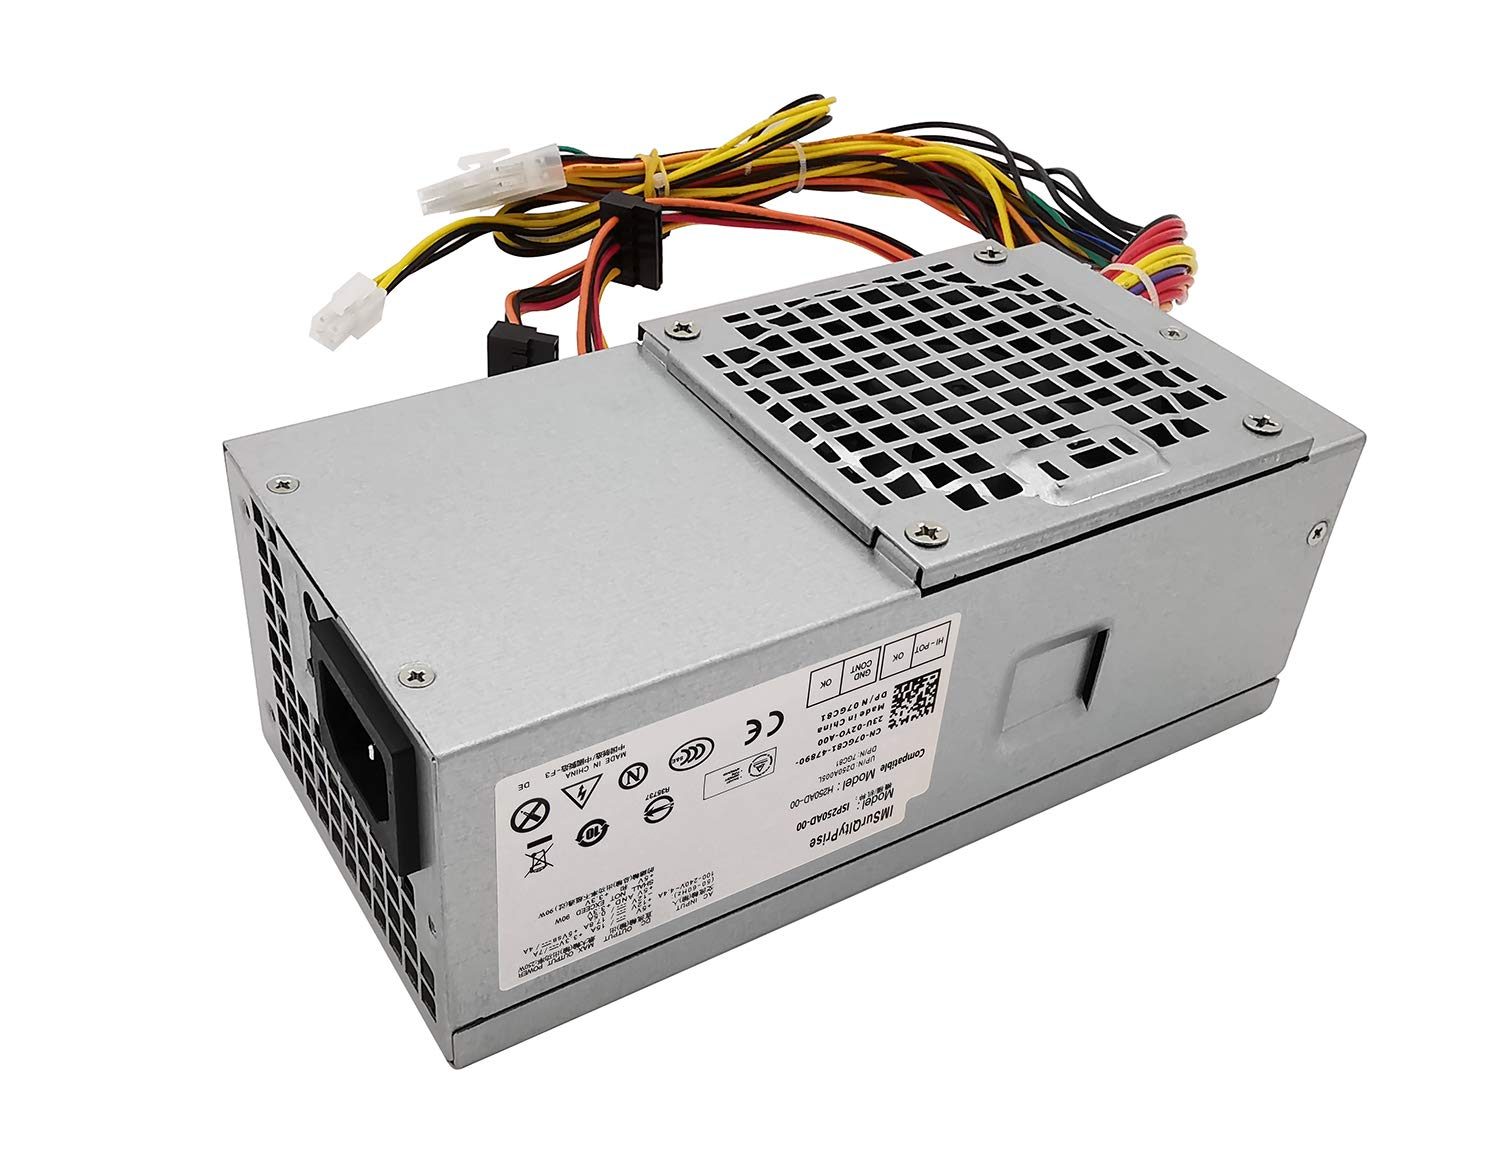 New Genuine Dell Inspiron 620s 580s 570s Slim Desktop Power Supply 6MVJH 5FFR5